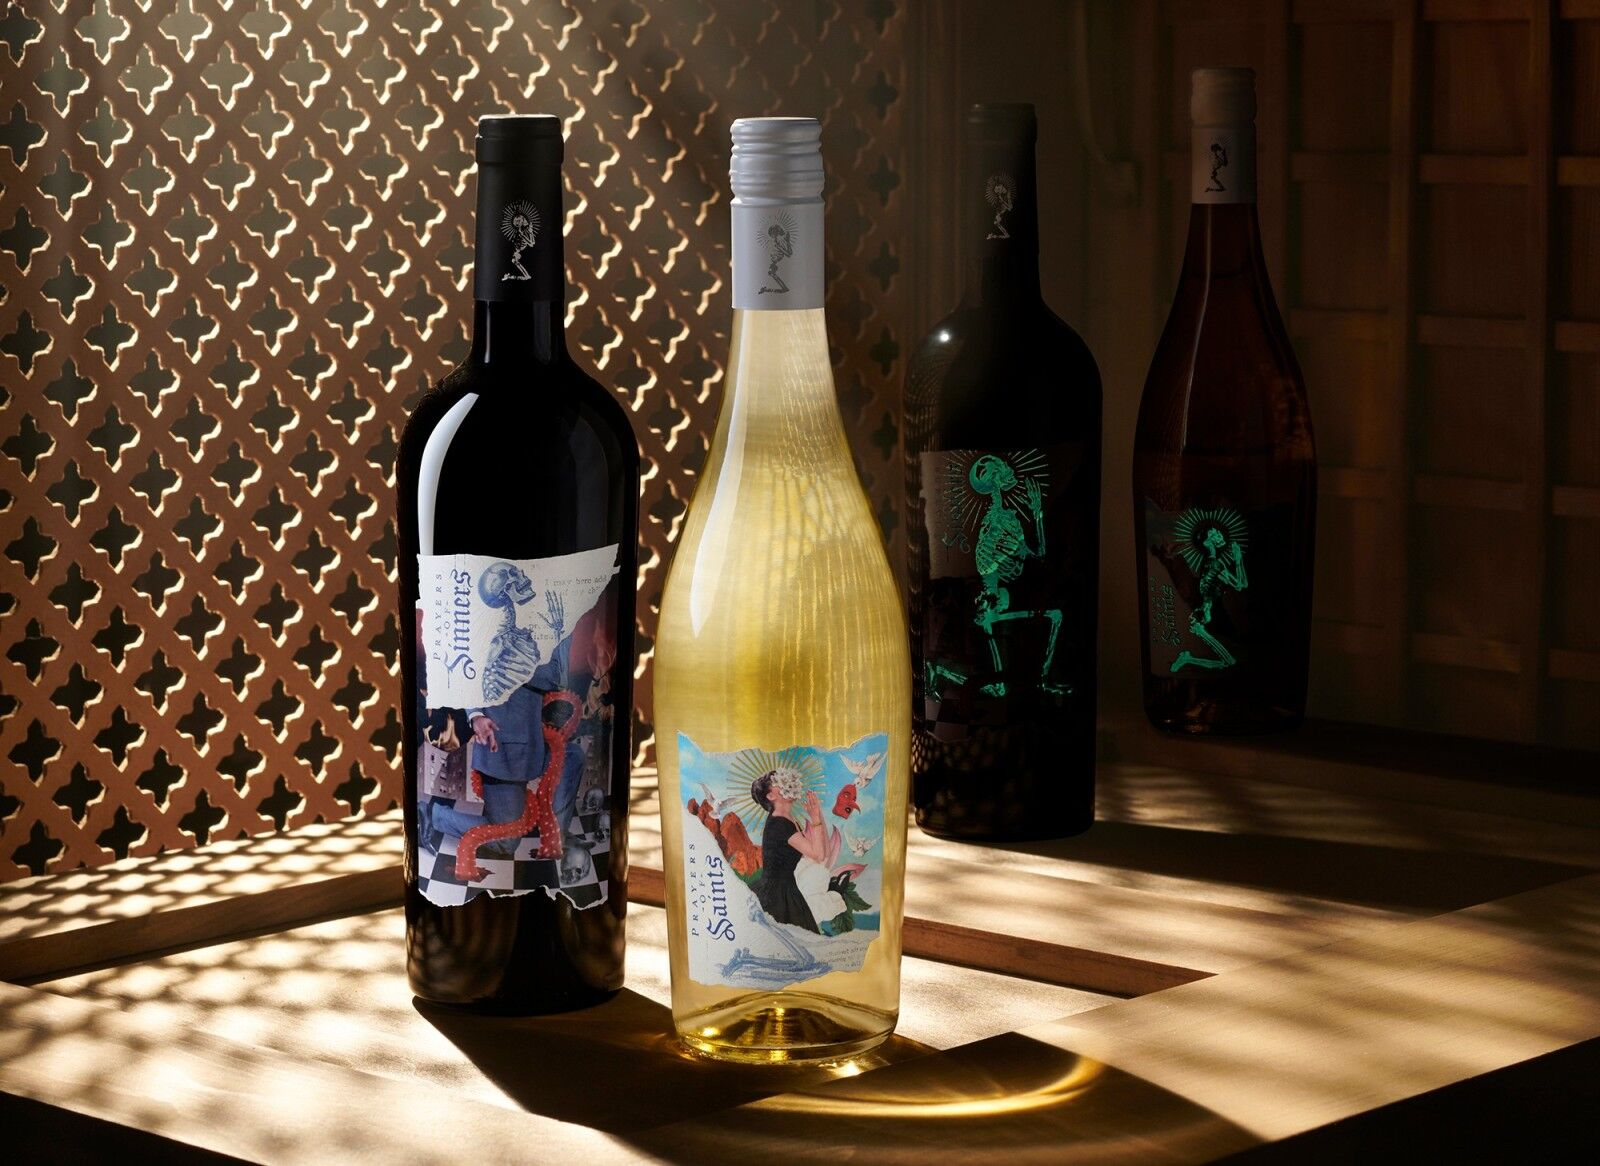 Sinners, saints and prisoners, Halloween wines add to the spooky celebration